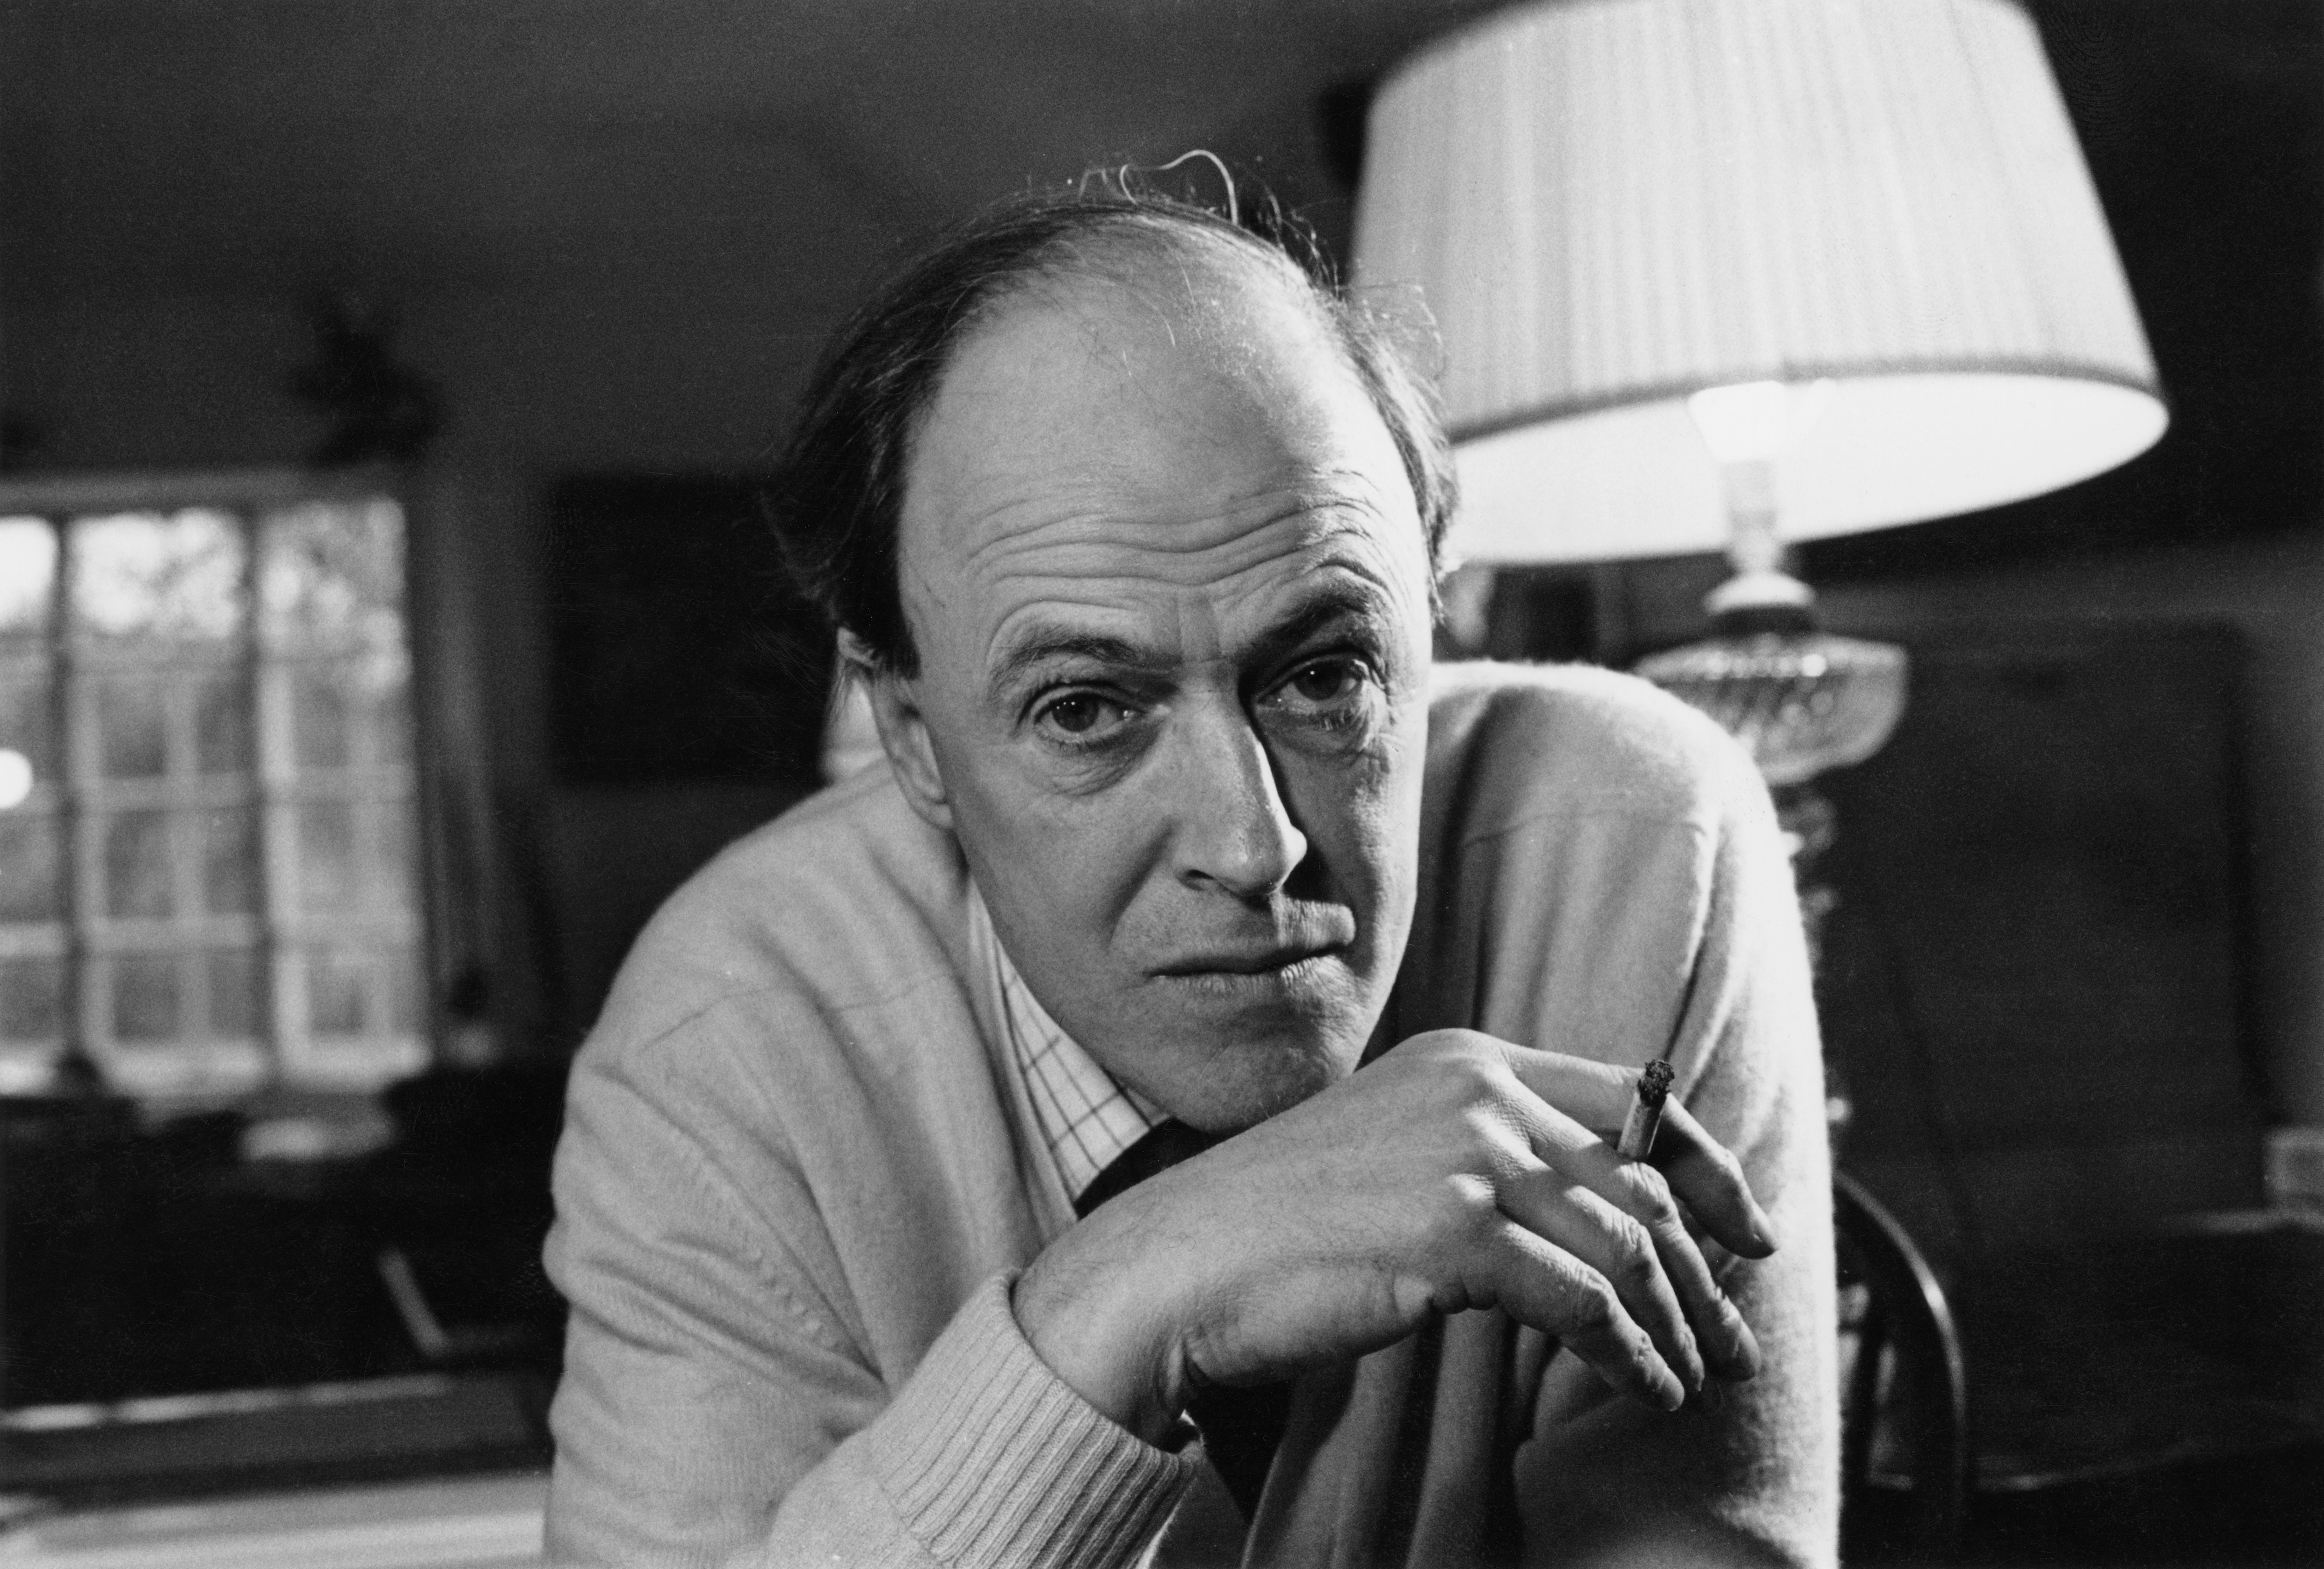 British writer Roald Dahl (1916 - 1990) on Dec. 11, 1971